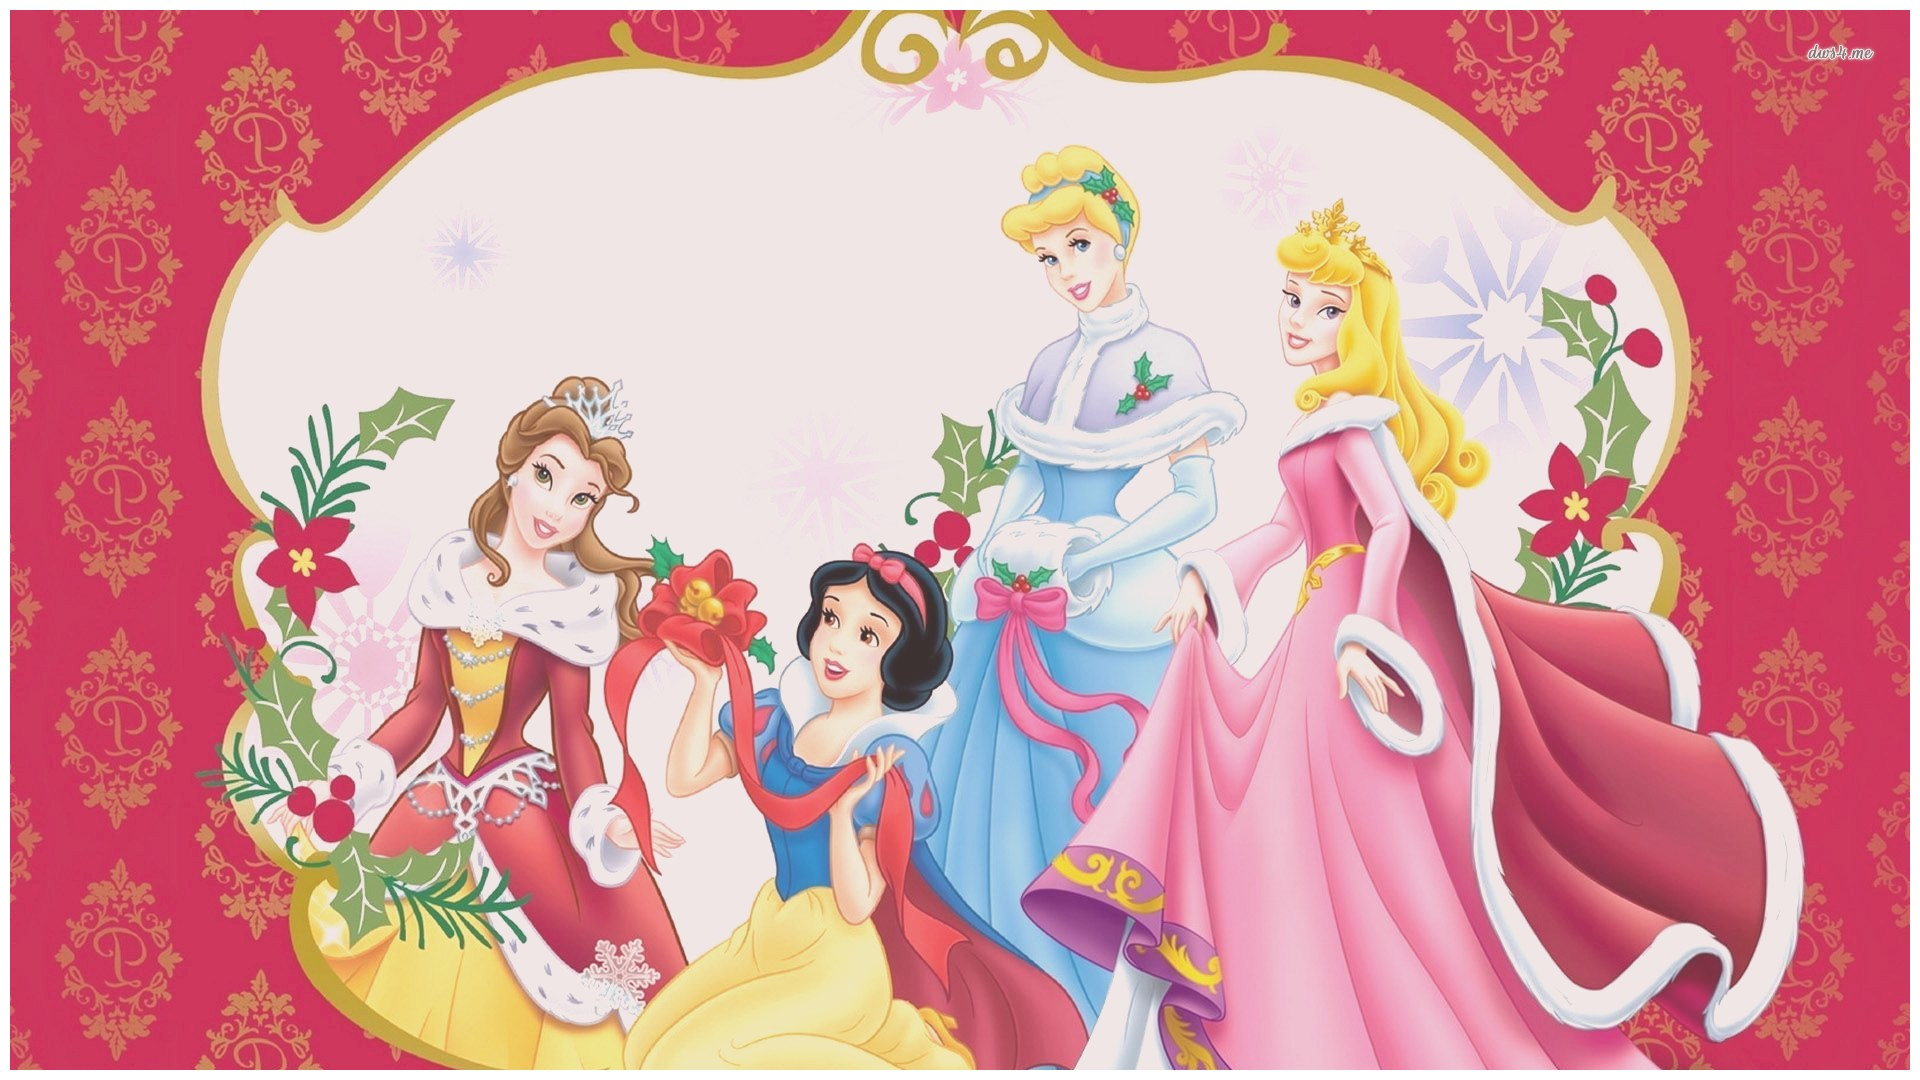 Disney Princess Wallpapers Download For Mobile   Disney 1920x1080